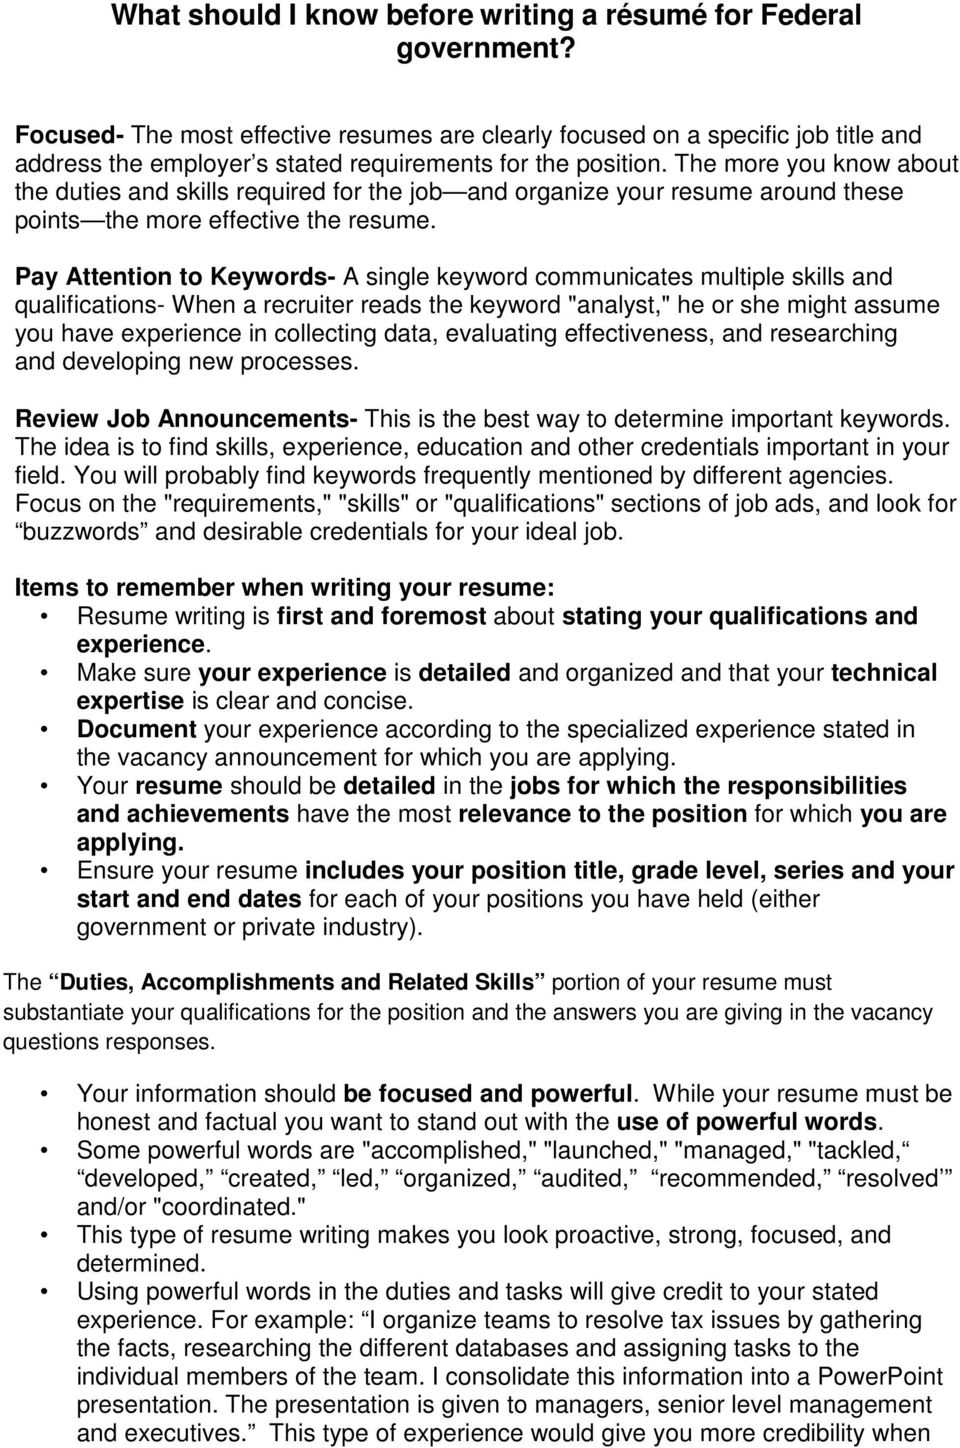 The more you know about the duties and skills required for the job and organize your resume around these points the more effective the resume.